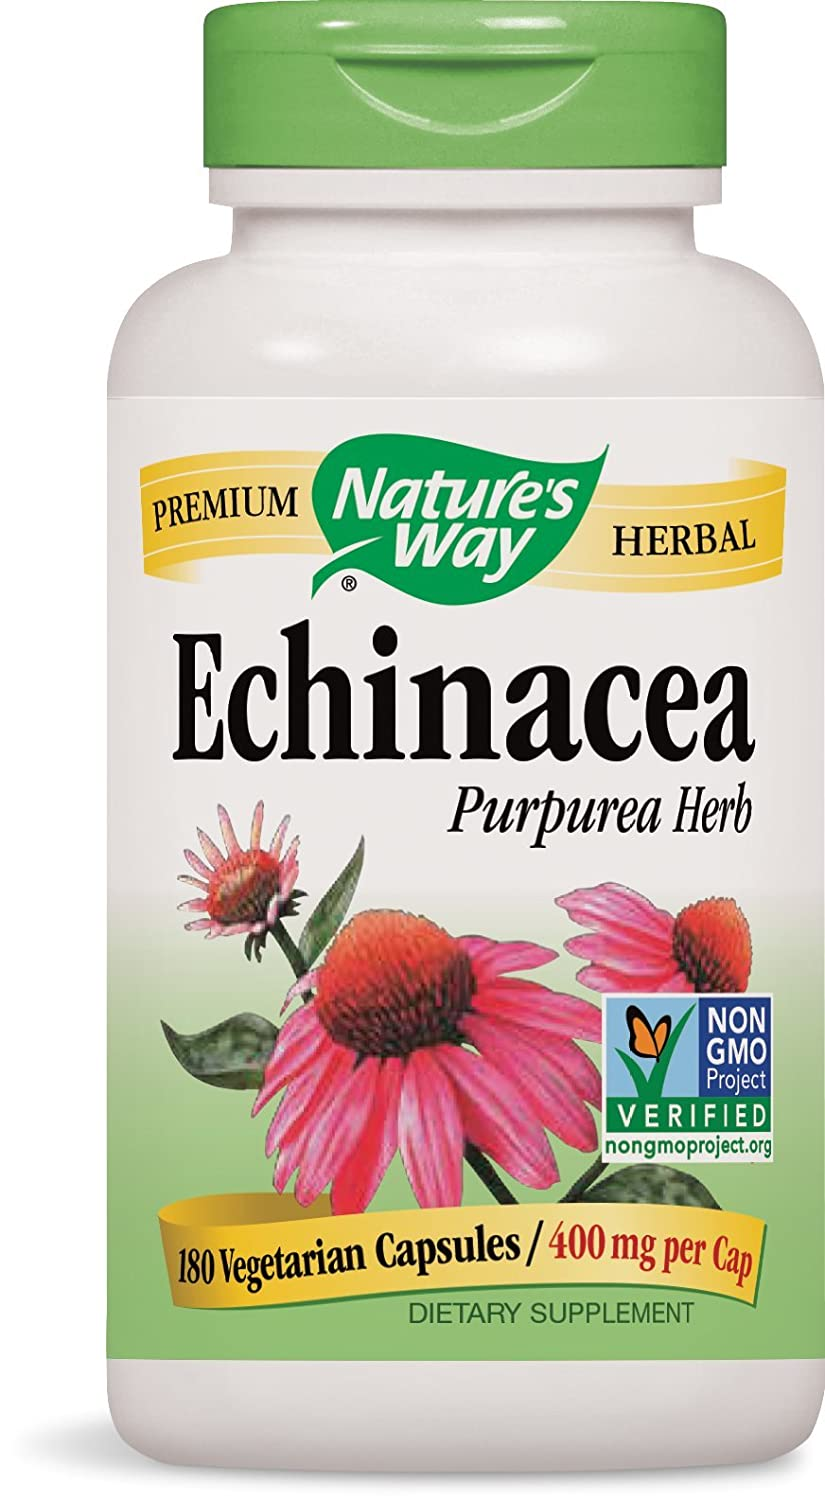 Echinacea tablets: instructions for use and reviews 5